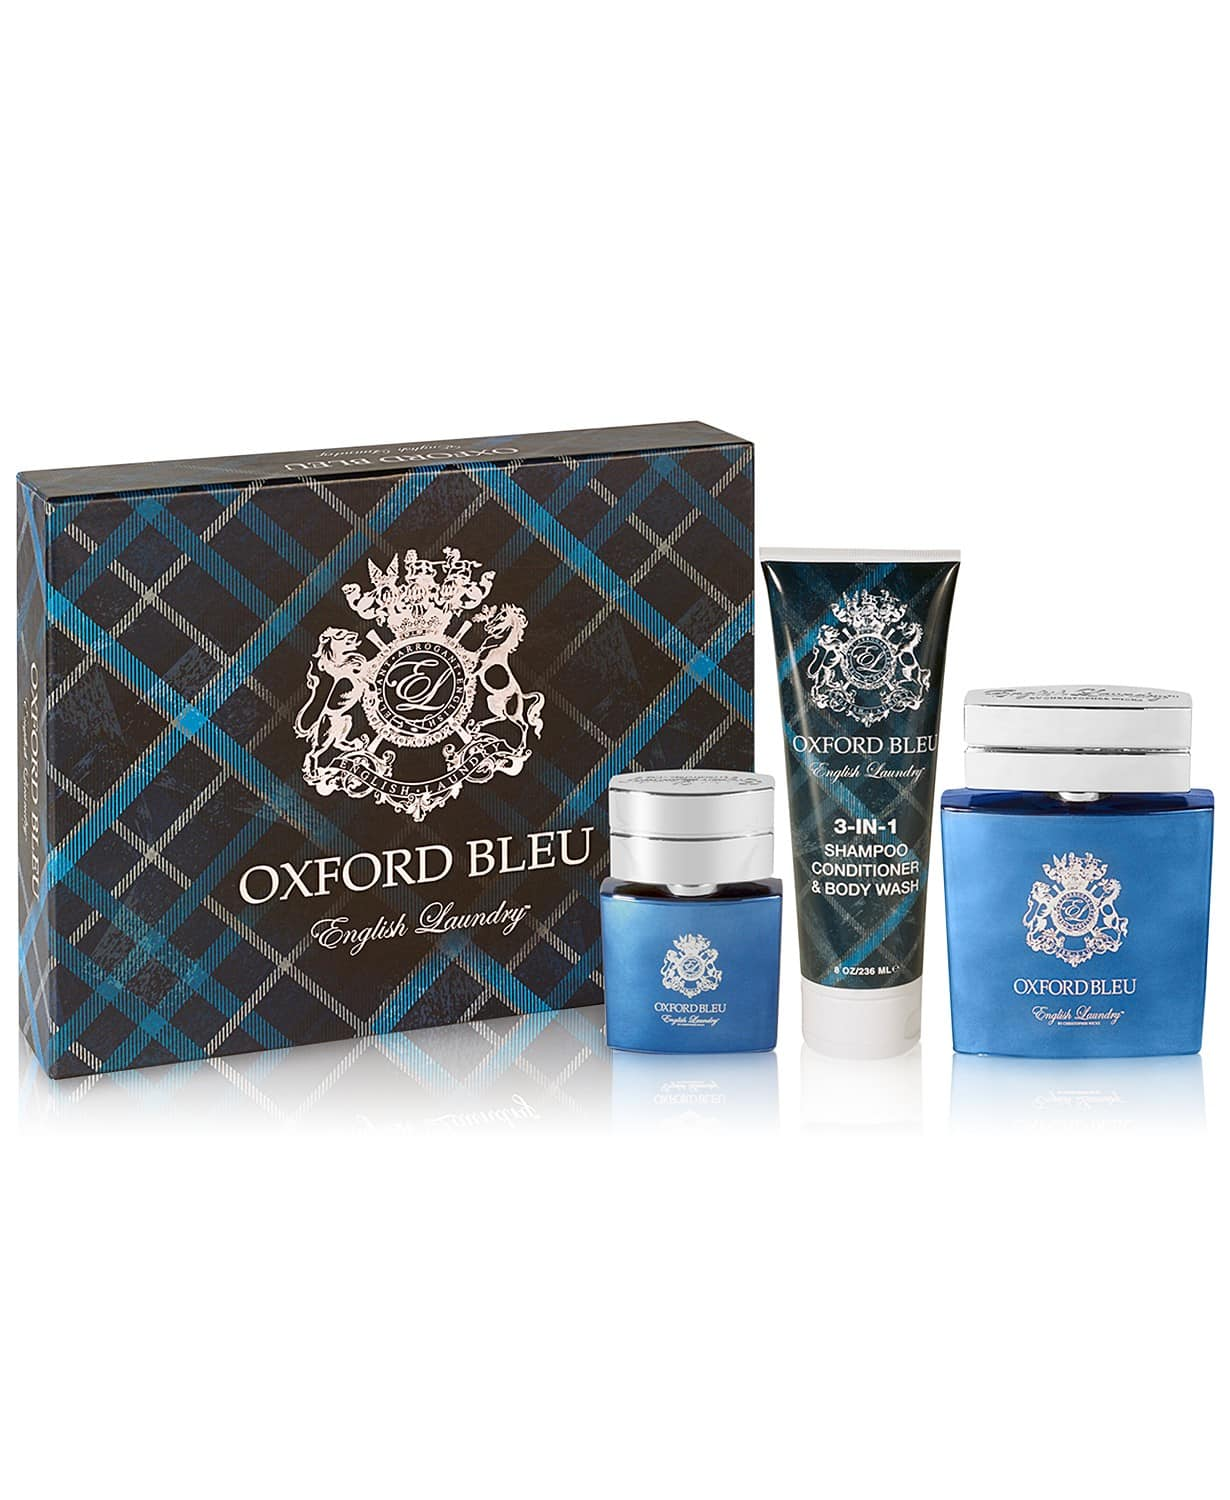 3-Piece English Laundry Men's Fragrance Gift Sets (Oxford Blue or Crown) $25 each + Free Shipping